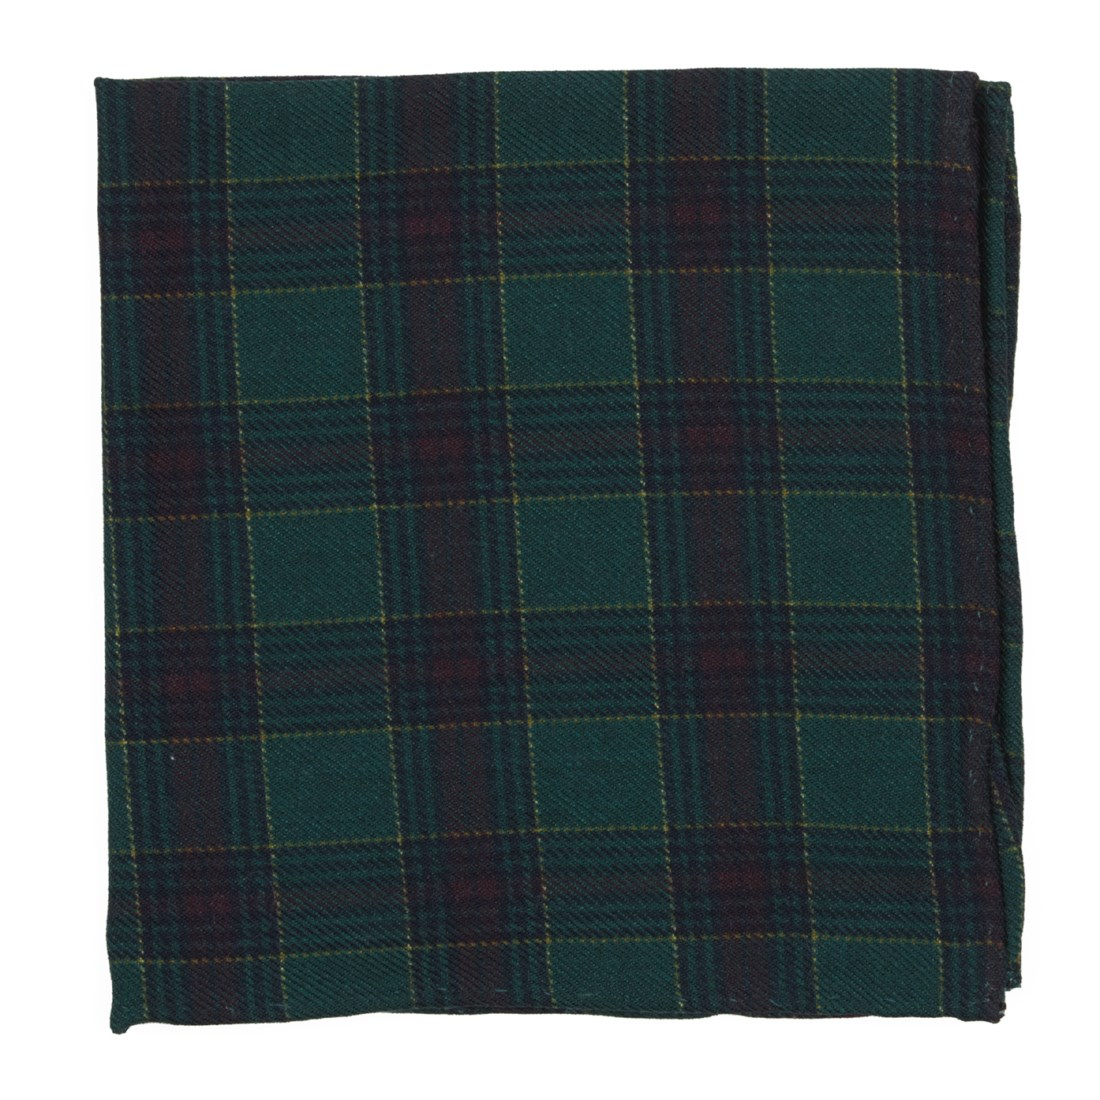 Pittsfield Plaid Pocket Square in Hunter Green